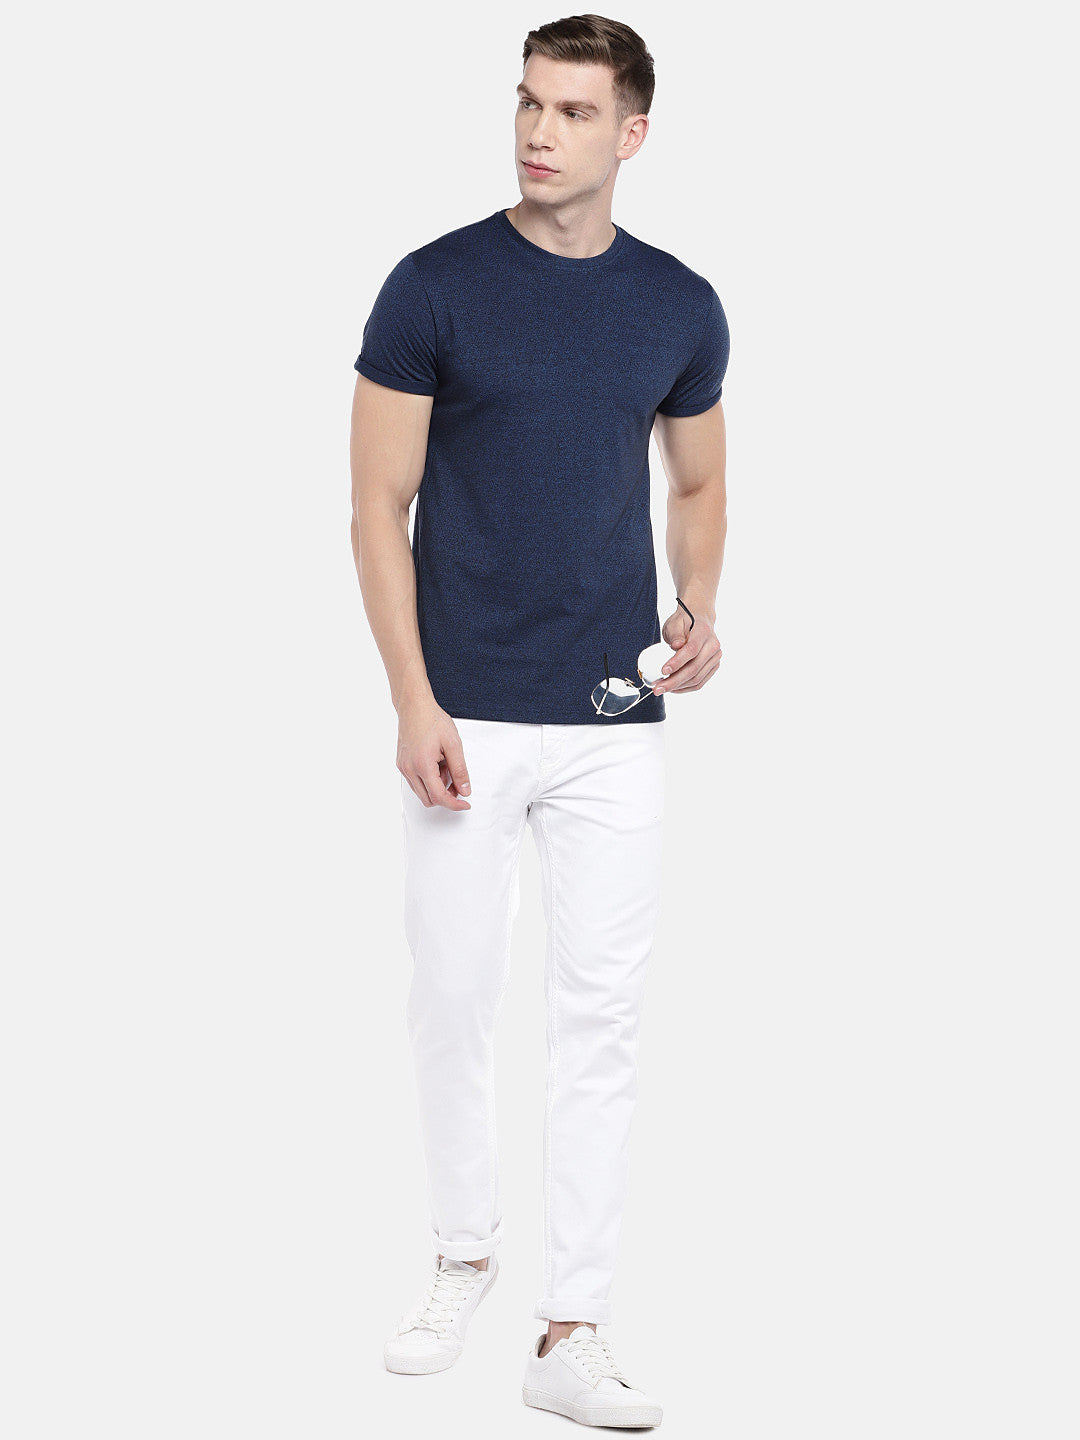 Navy Blue Solid Round Neck T-shirt-4